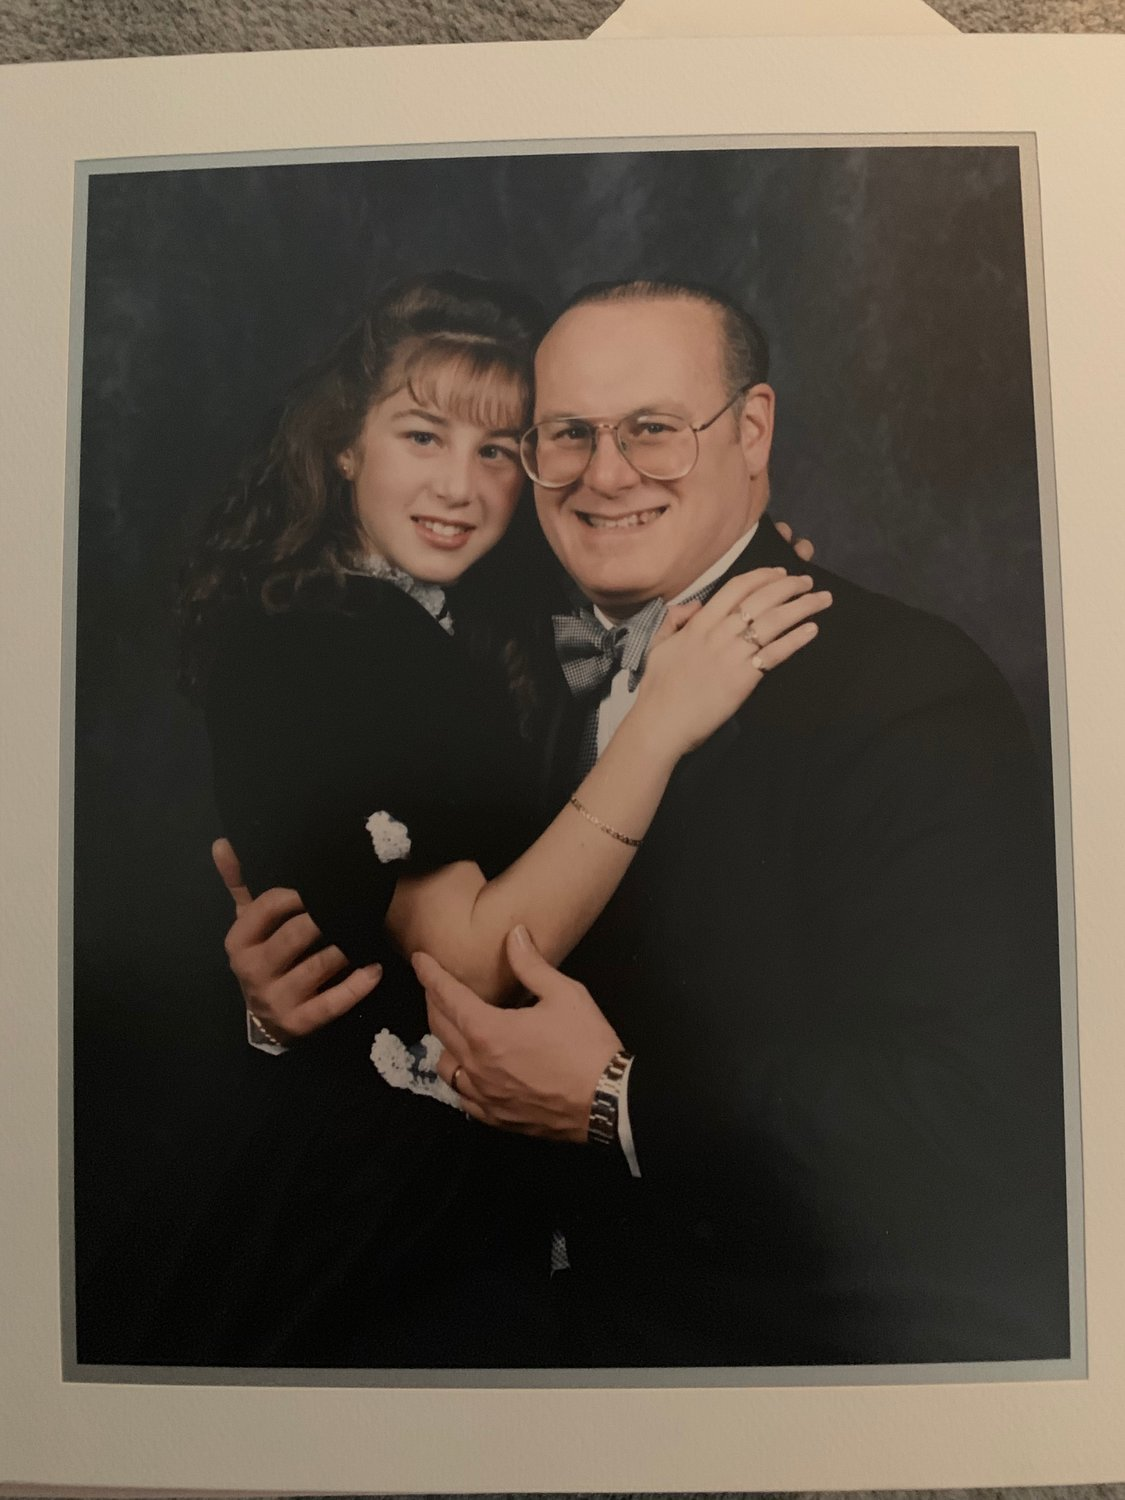 Author Jill Santopolo at age 12 with her father, John Santopolo, whose death in 2015 was a major influence on her latest novel, 'More Than Words.'